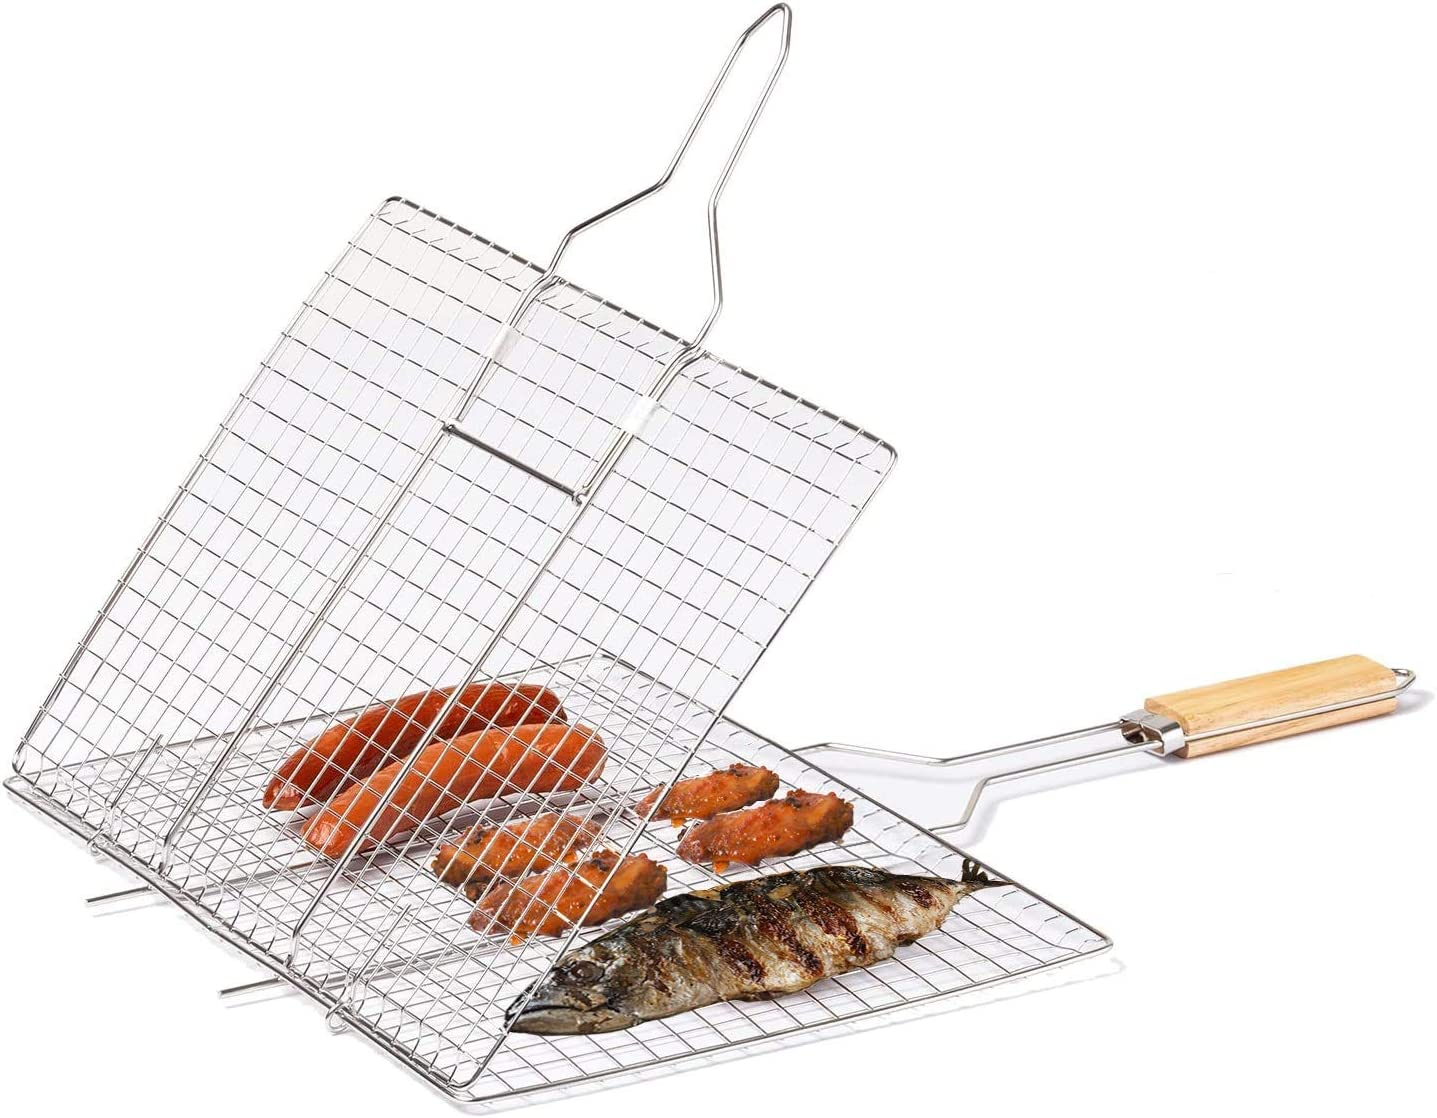 Portable BBQ Grilling Cage Tools for Deppon Grilling Basket with Wooden Handle